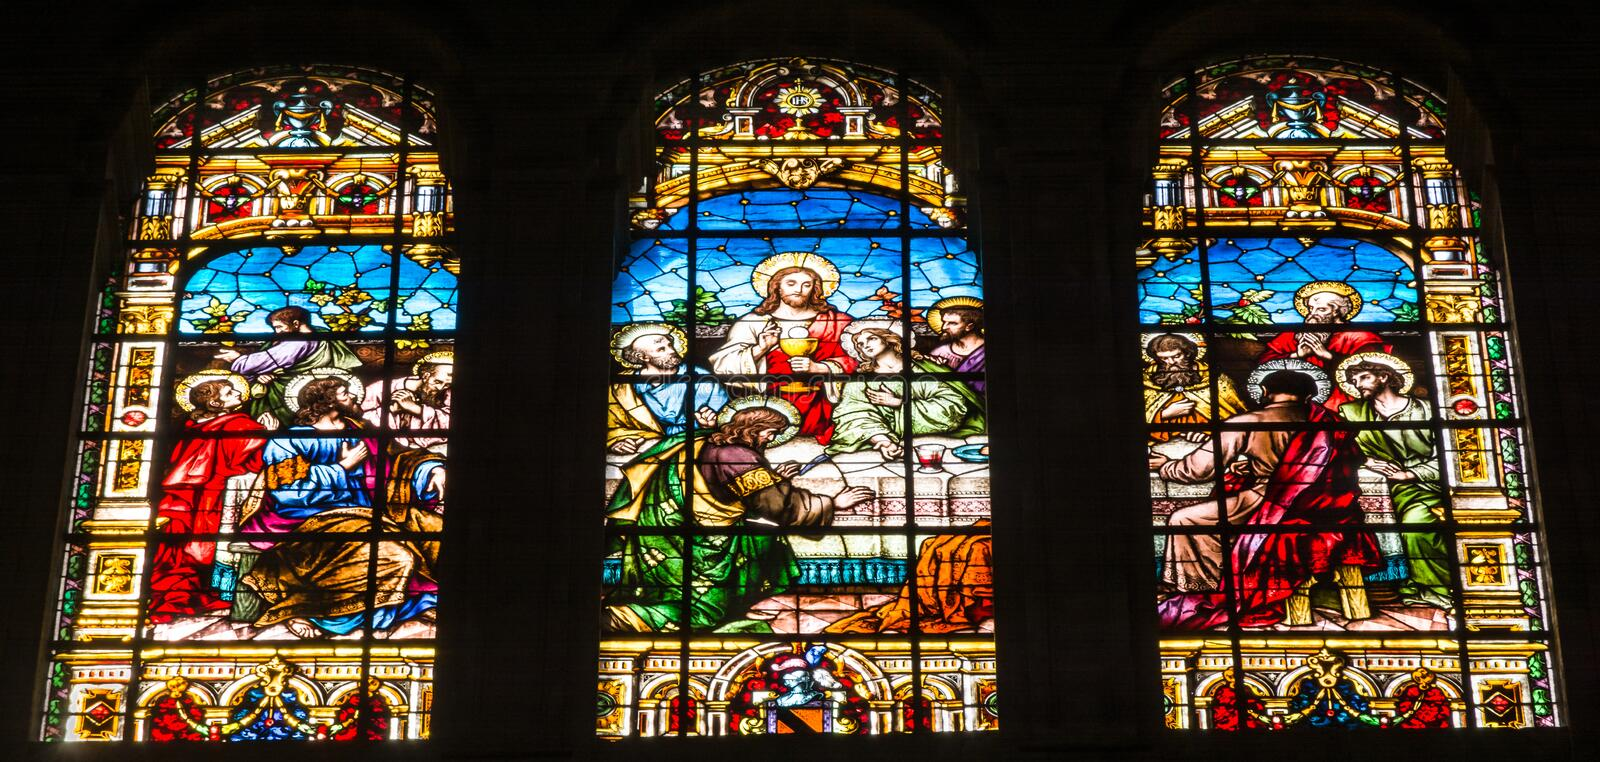 The Last Supper scene on stained glass windows in Malaga Cathedral. Malaga, Spain - March 5, 2017: The Last Supper scene on stained glass windows in Malaga stock photography